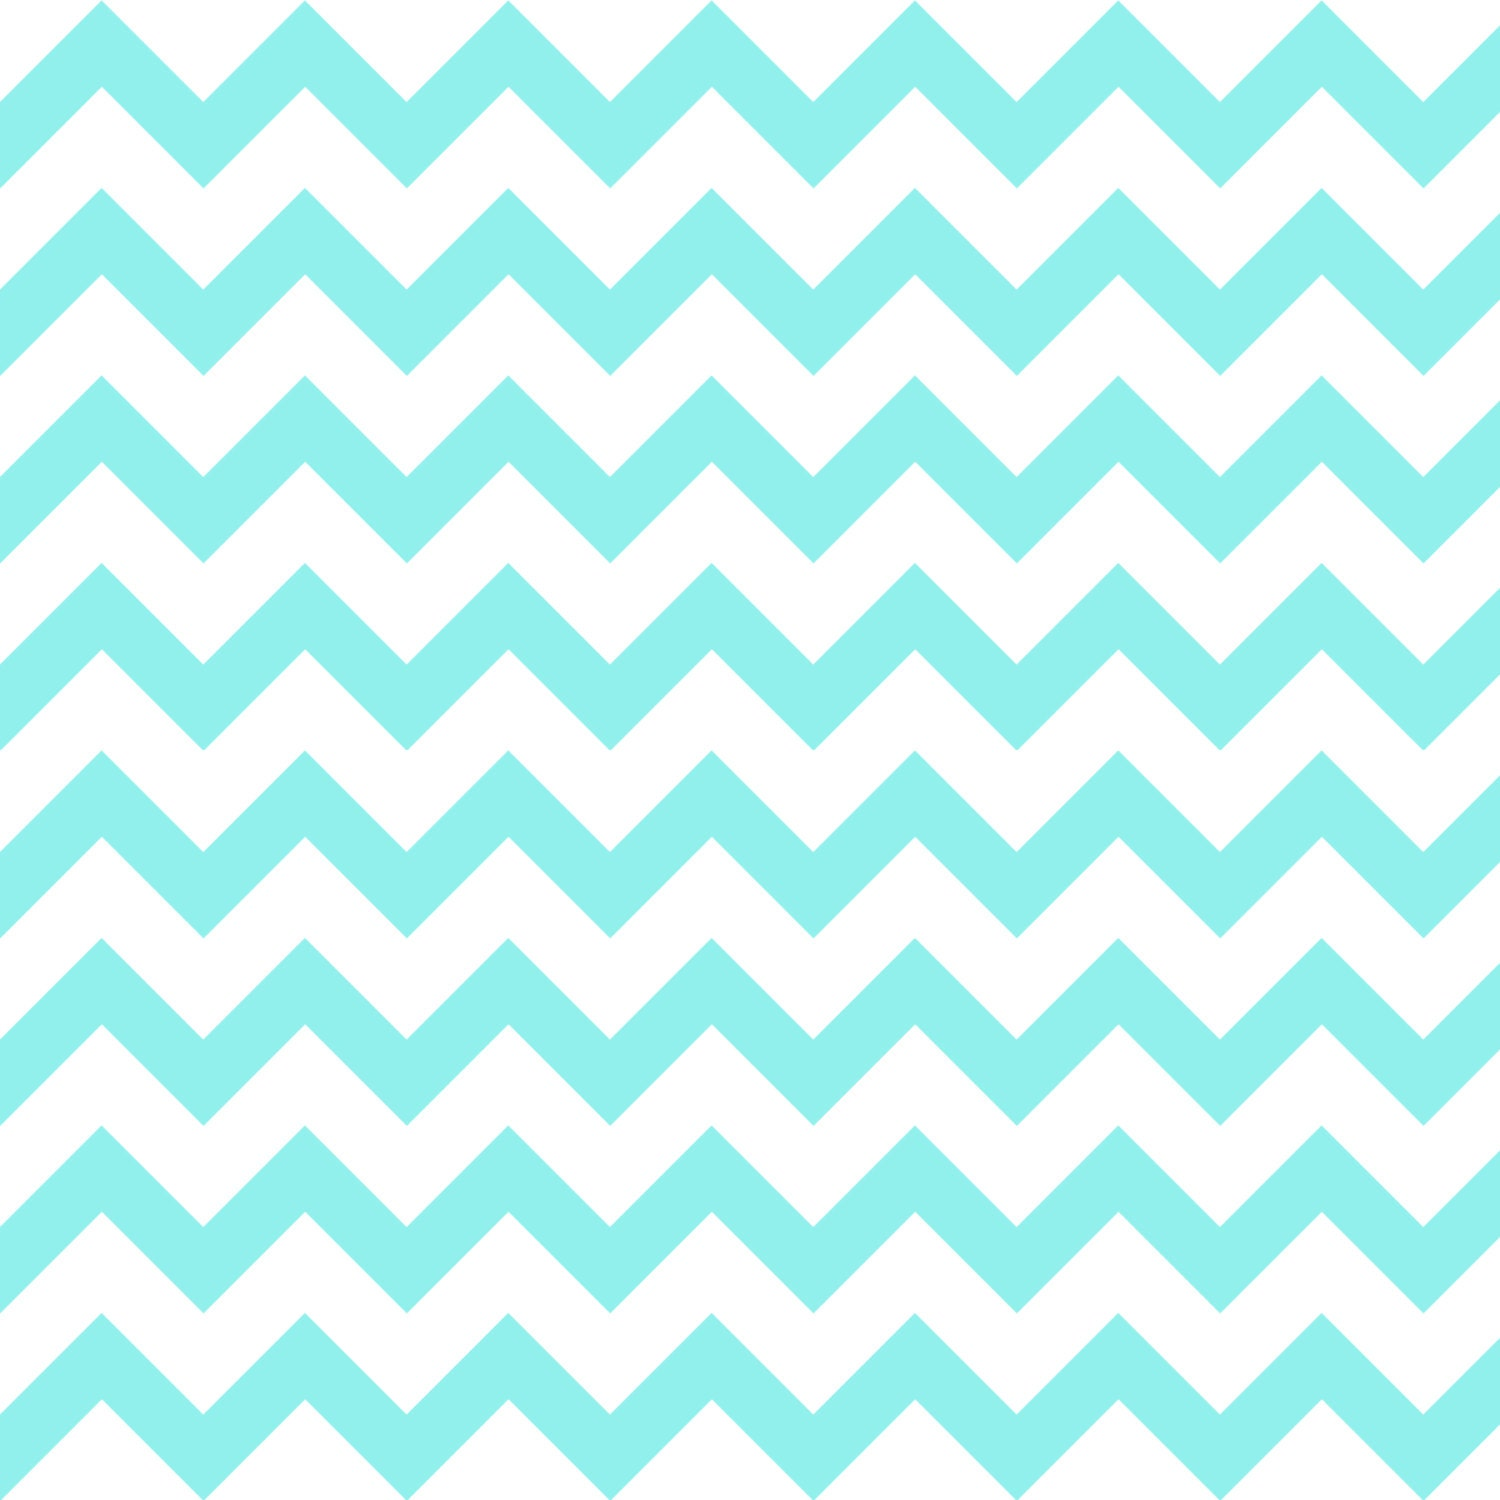 blue and green chevron pattern wallpaper. Black Bedroom Furniture Sets. Home Design Ideas